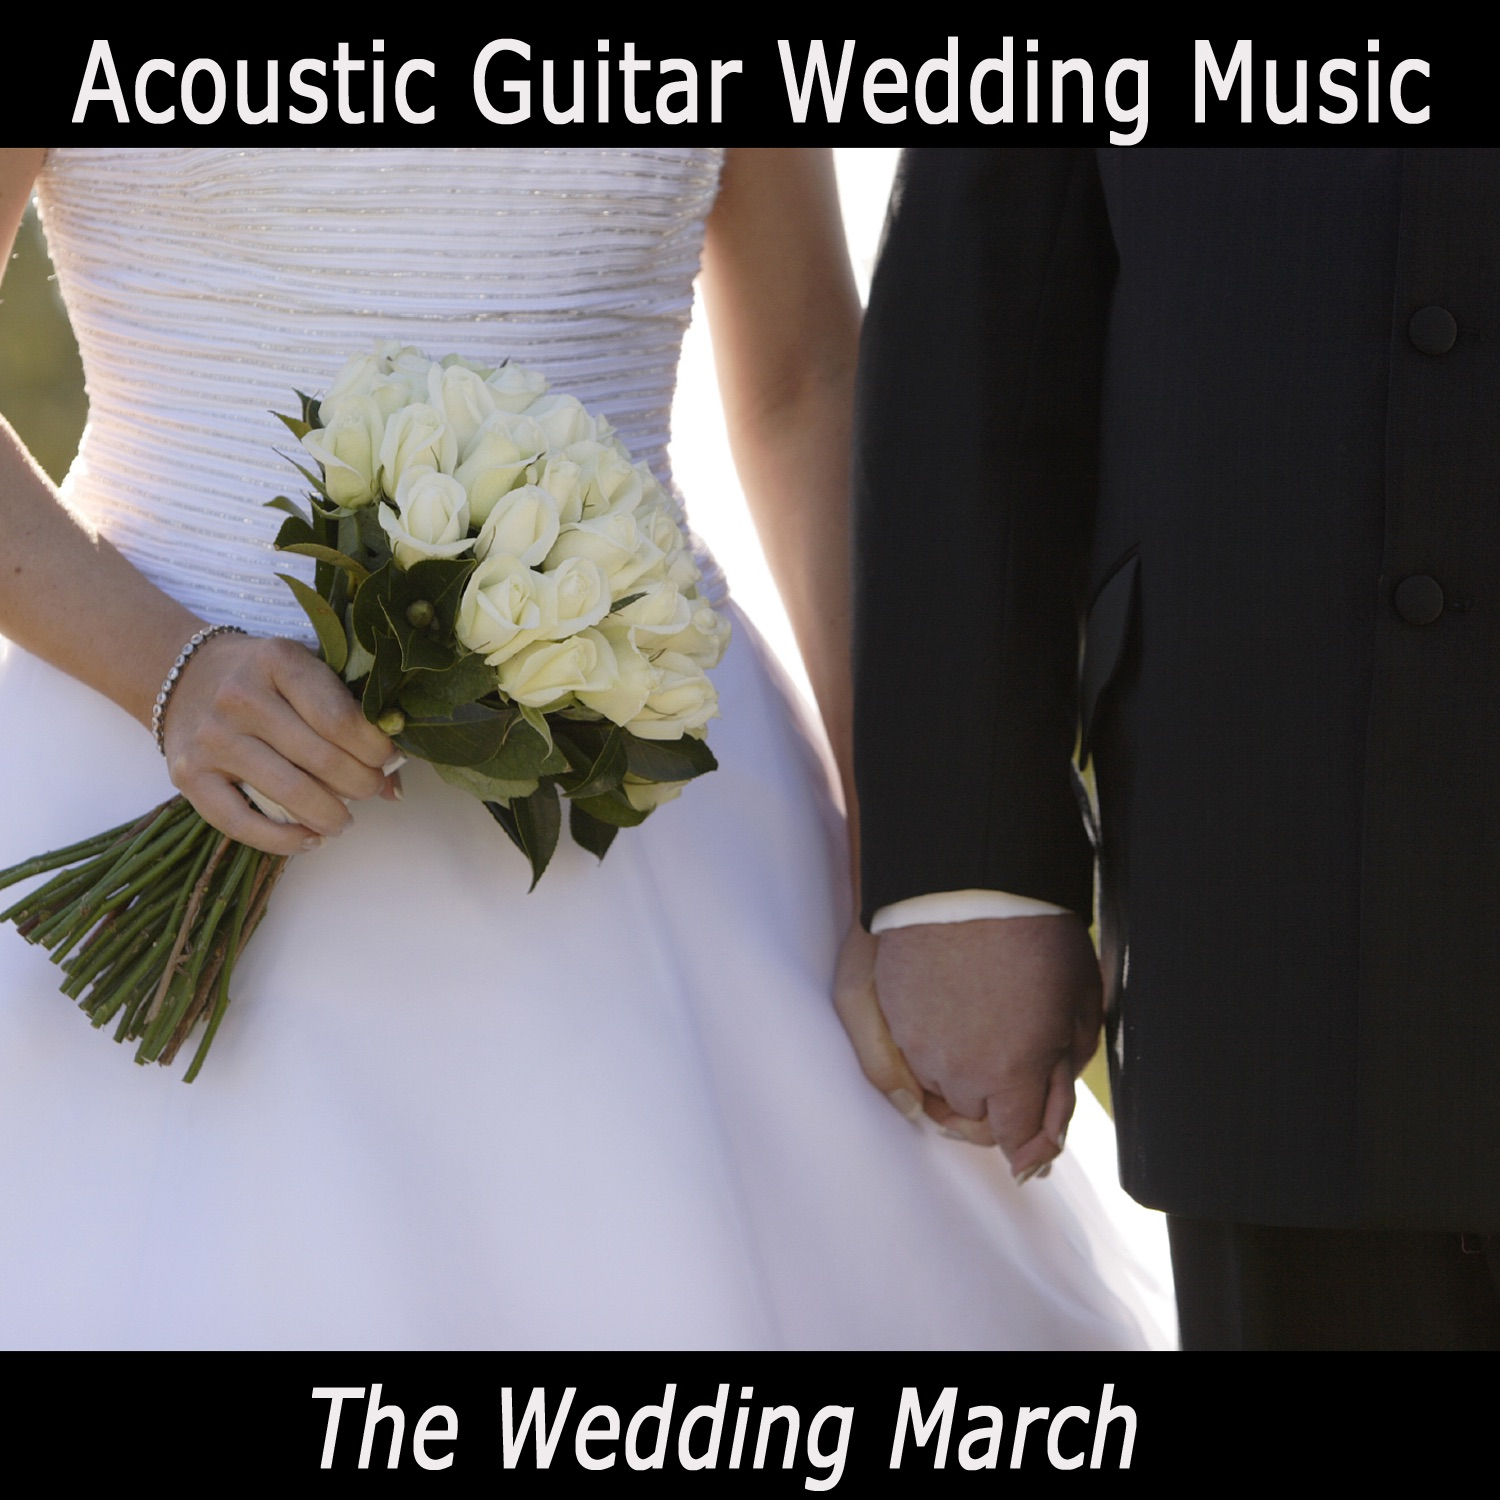 Acoustic Guitar Wedding Music The Wedding March By The ONeill Brothers Group On ITunes